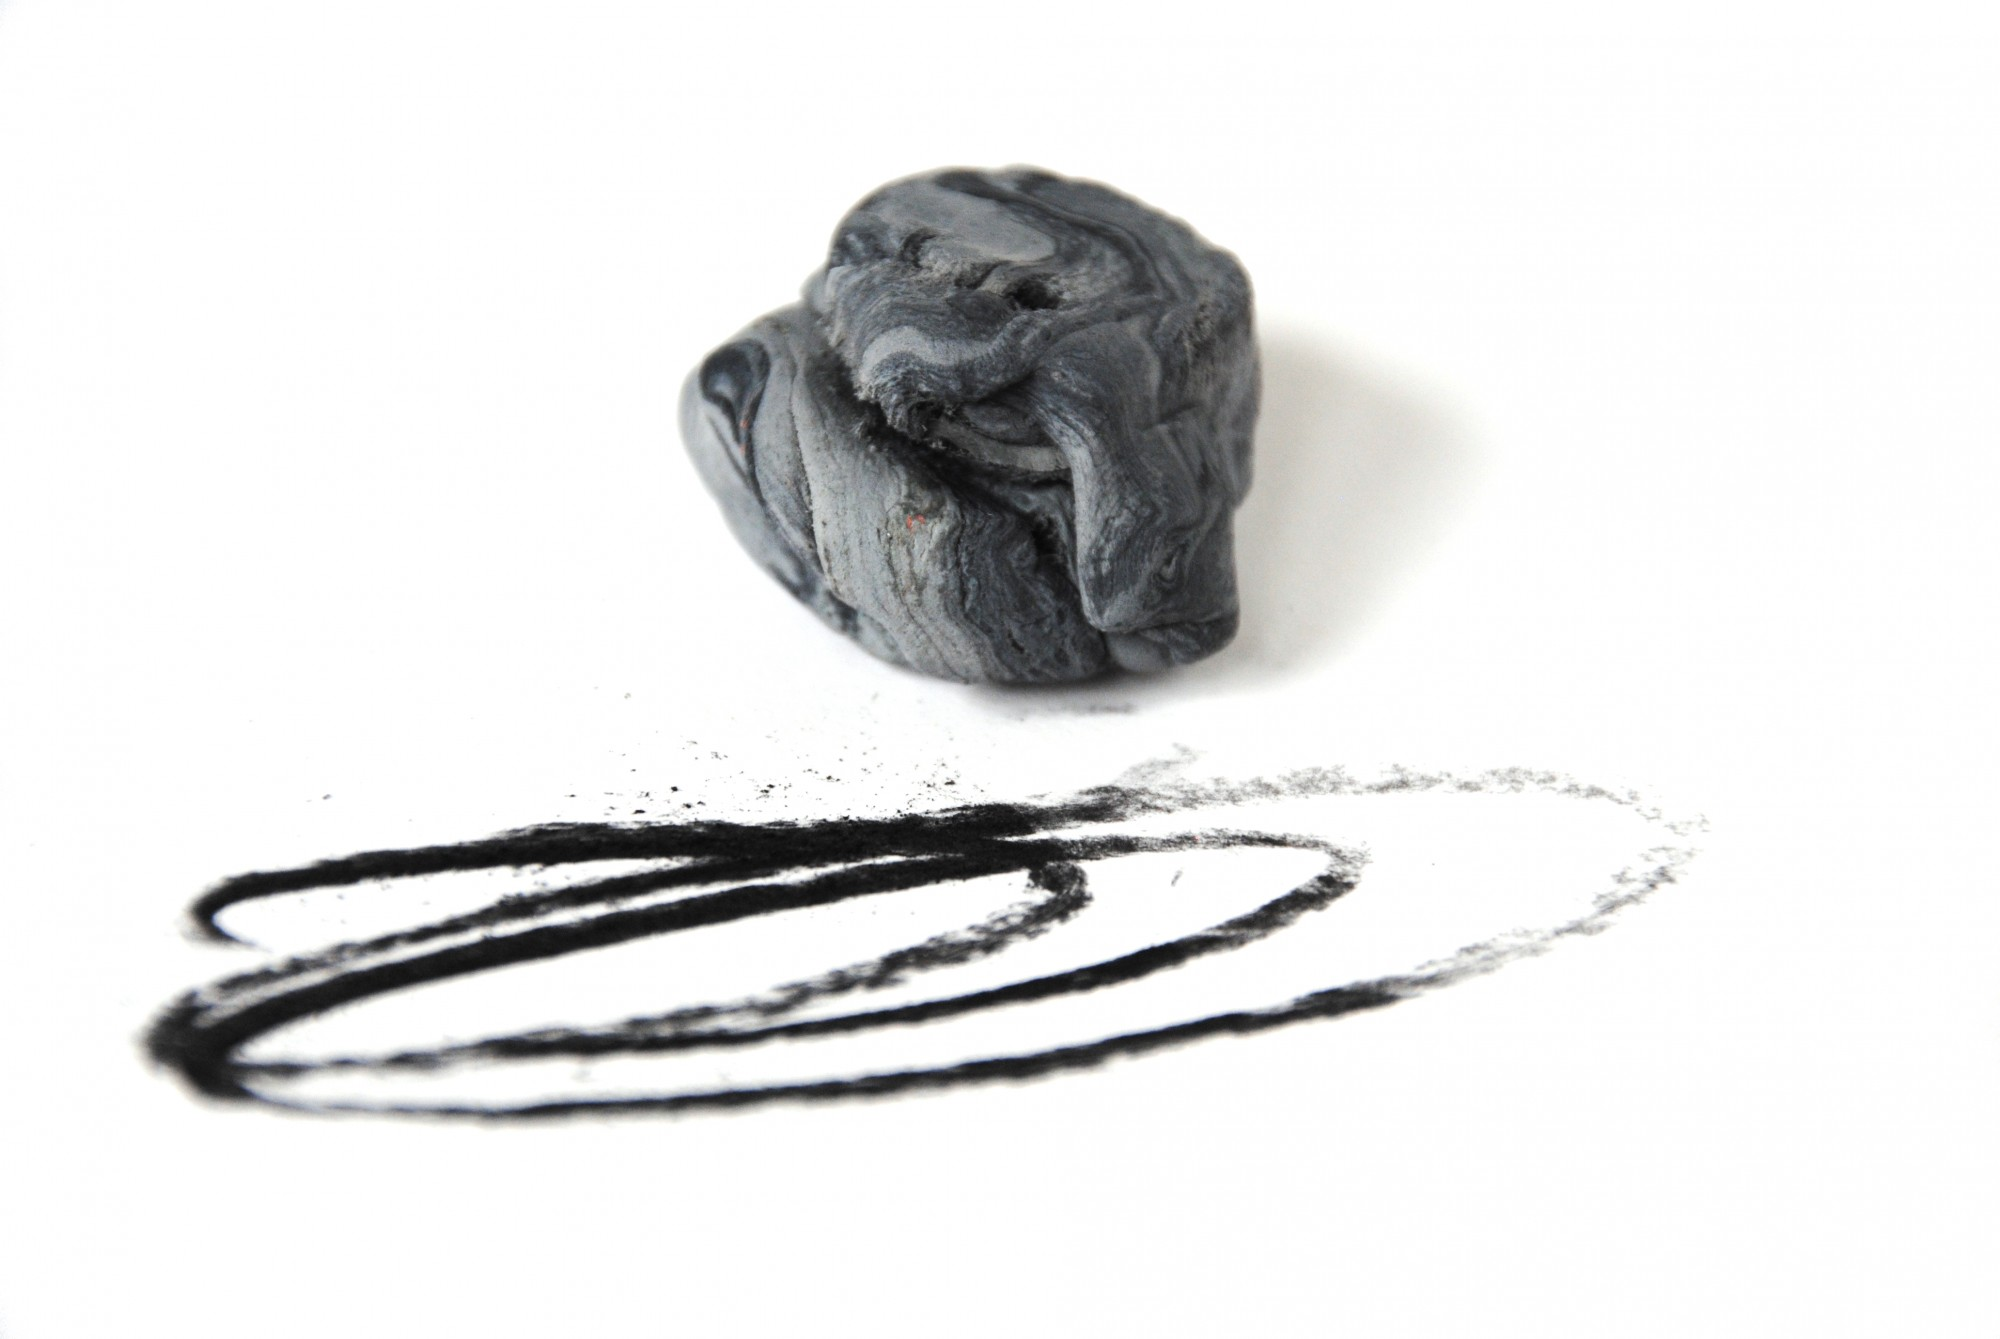 A piece of putty being used to absorb charcoal markings on paper.